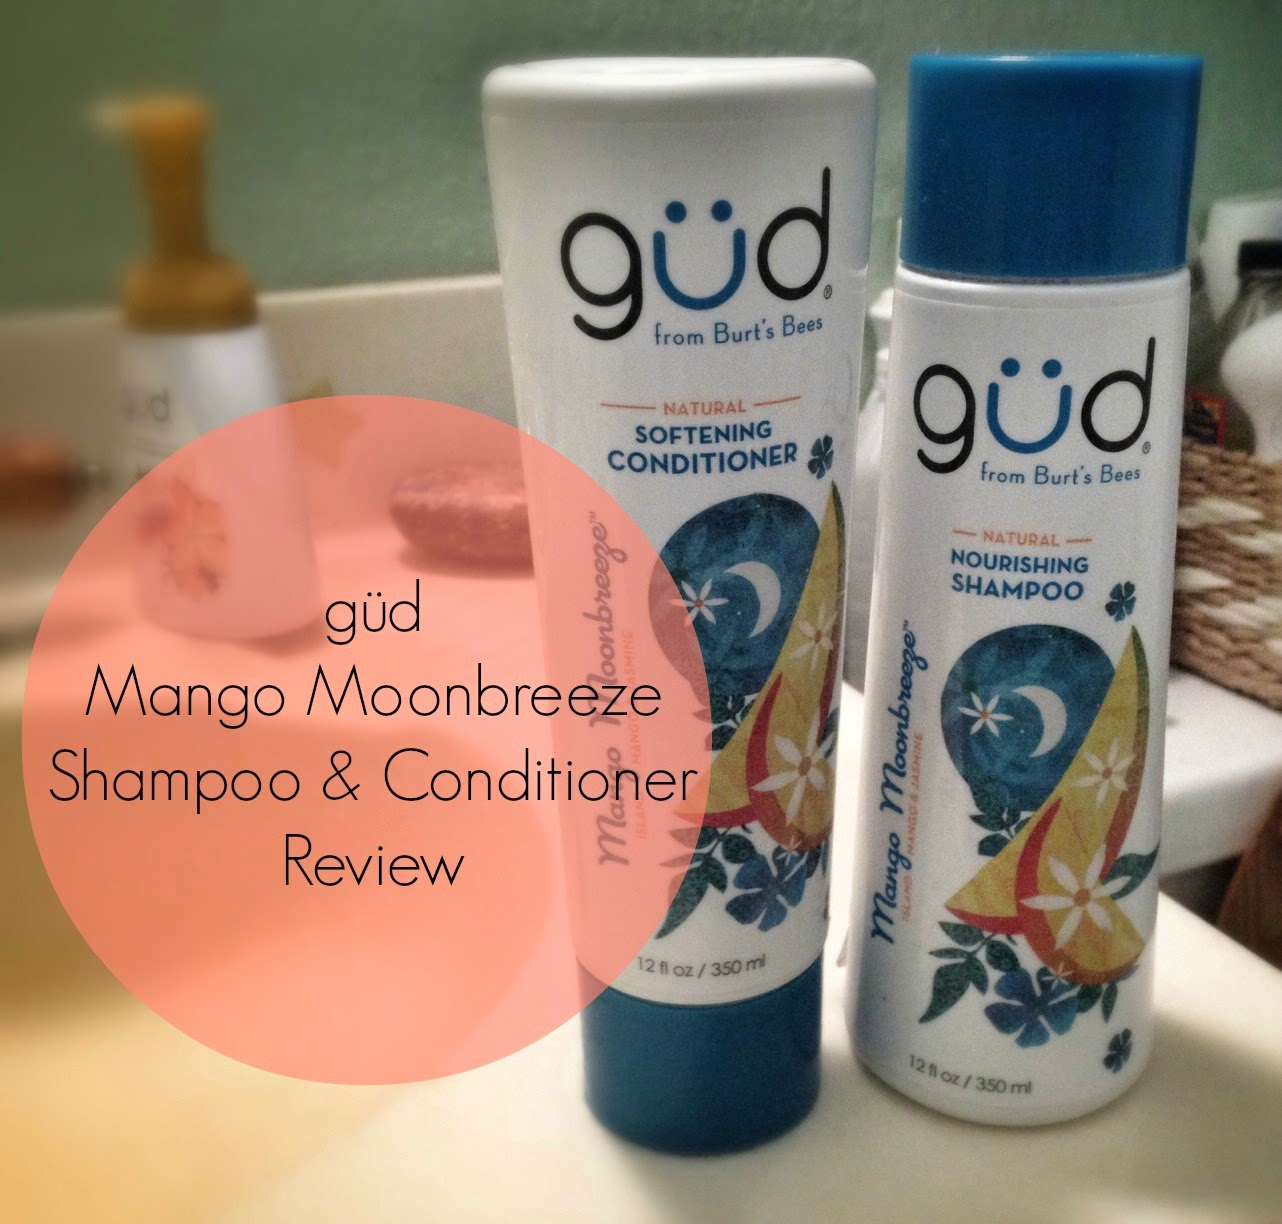 güd Mango Moonbreeze Shampoo & Conditioner